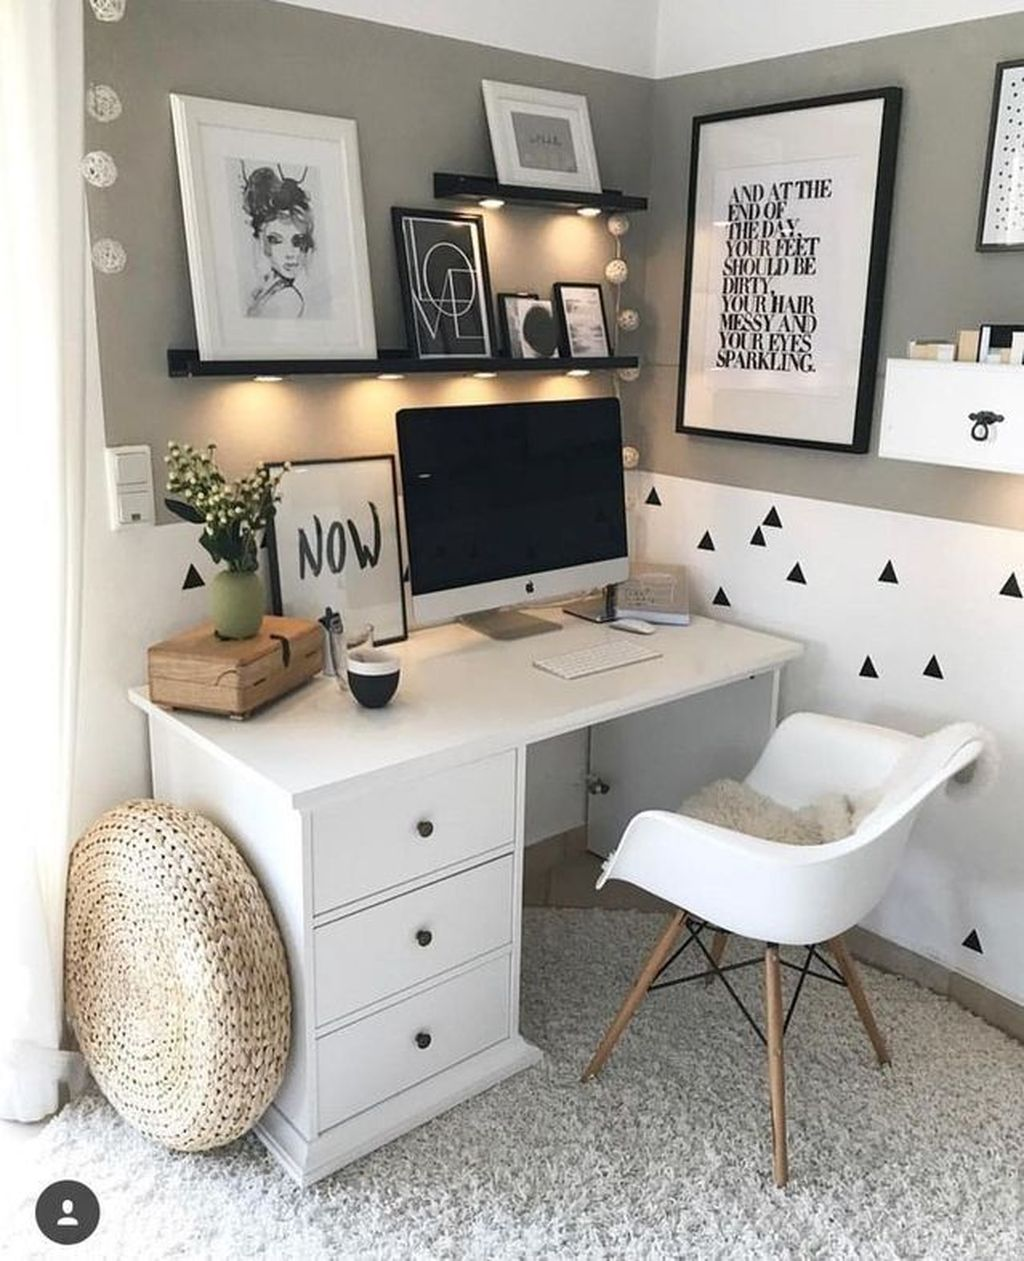 Inspiring Small Office Ideas For Small Space 32